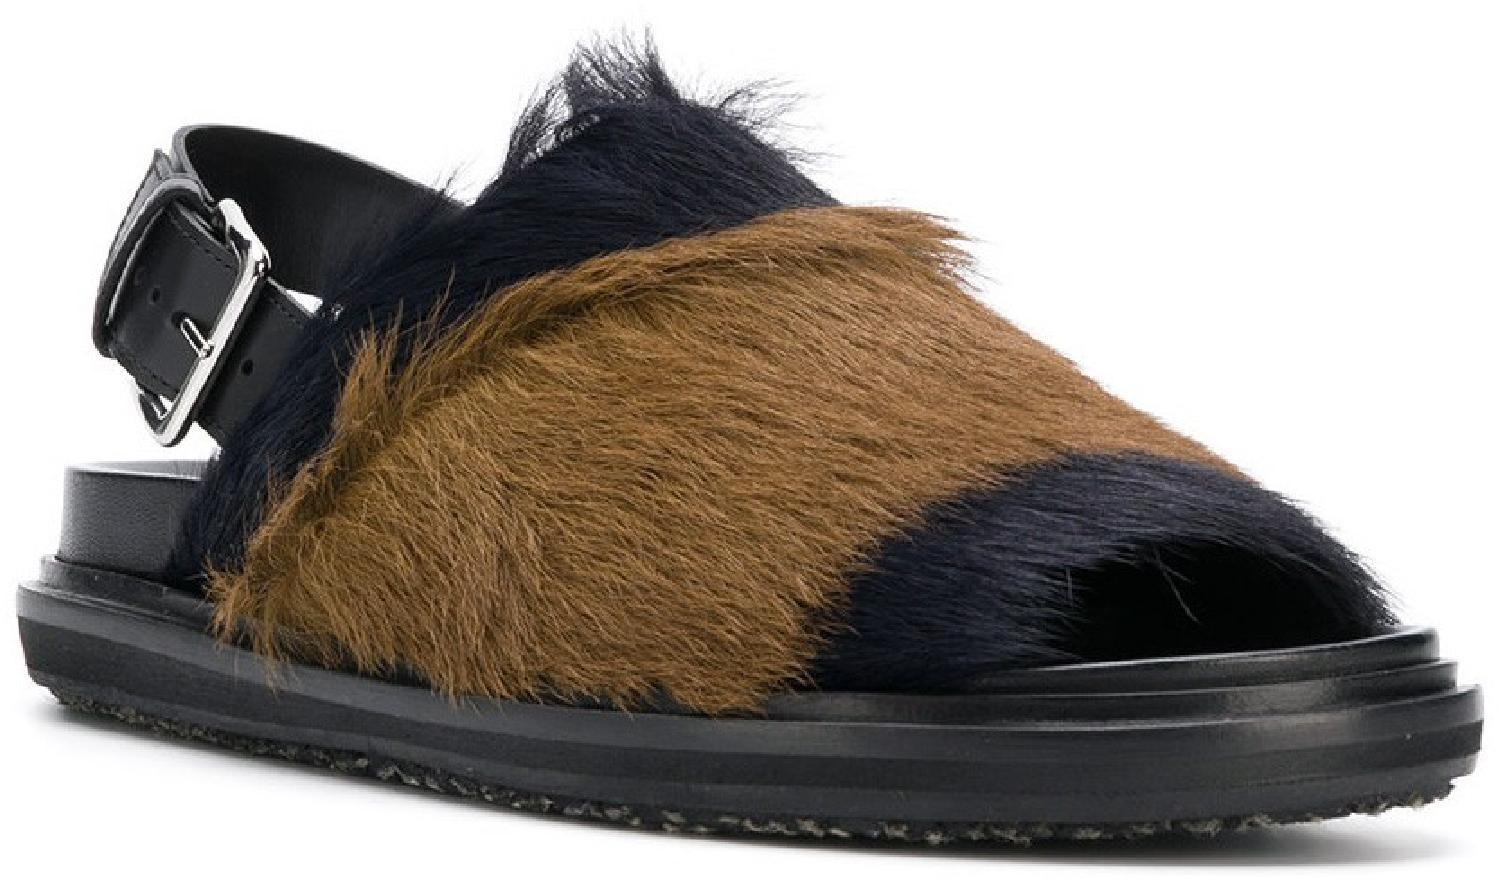 852c45102cb Marni women flat sandals in black and brown Fur with rear buckle ...